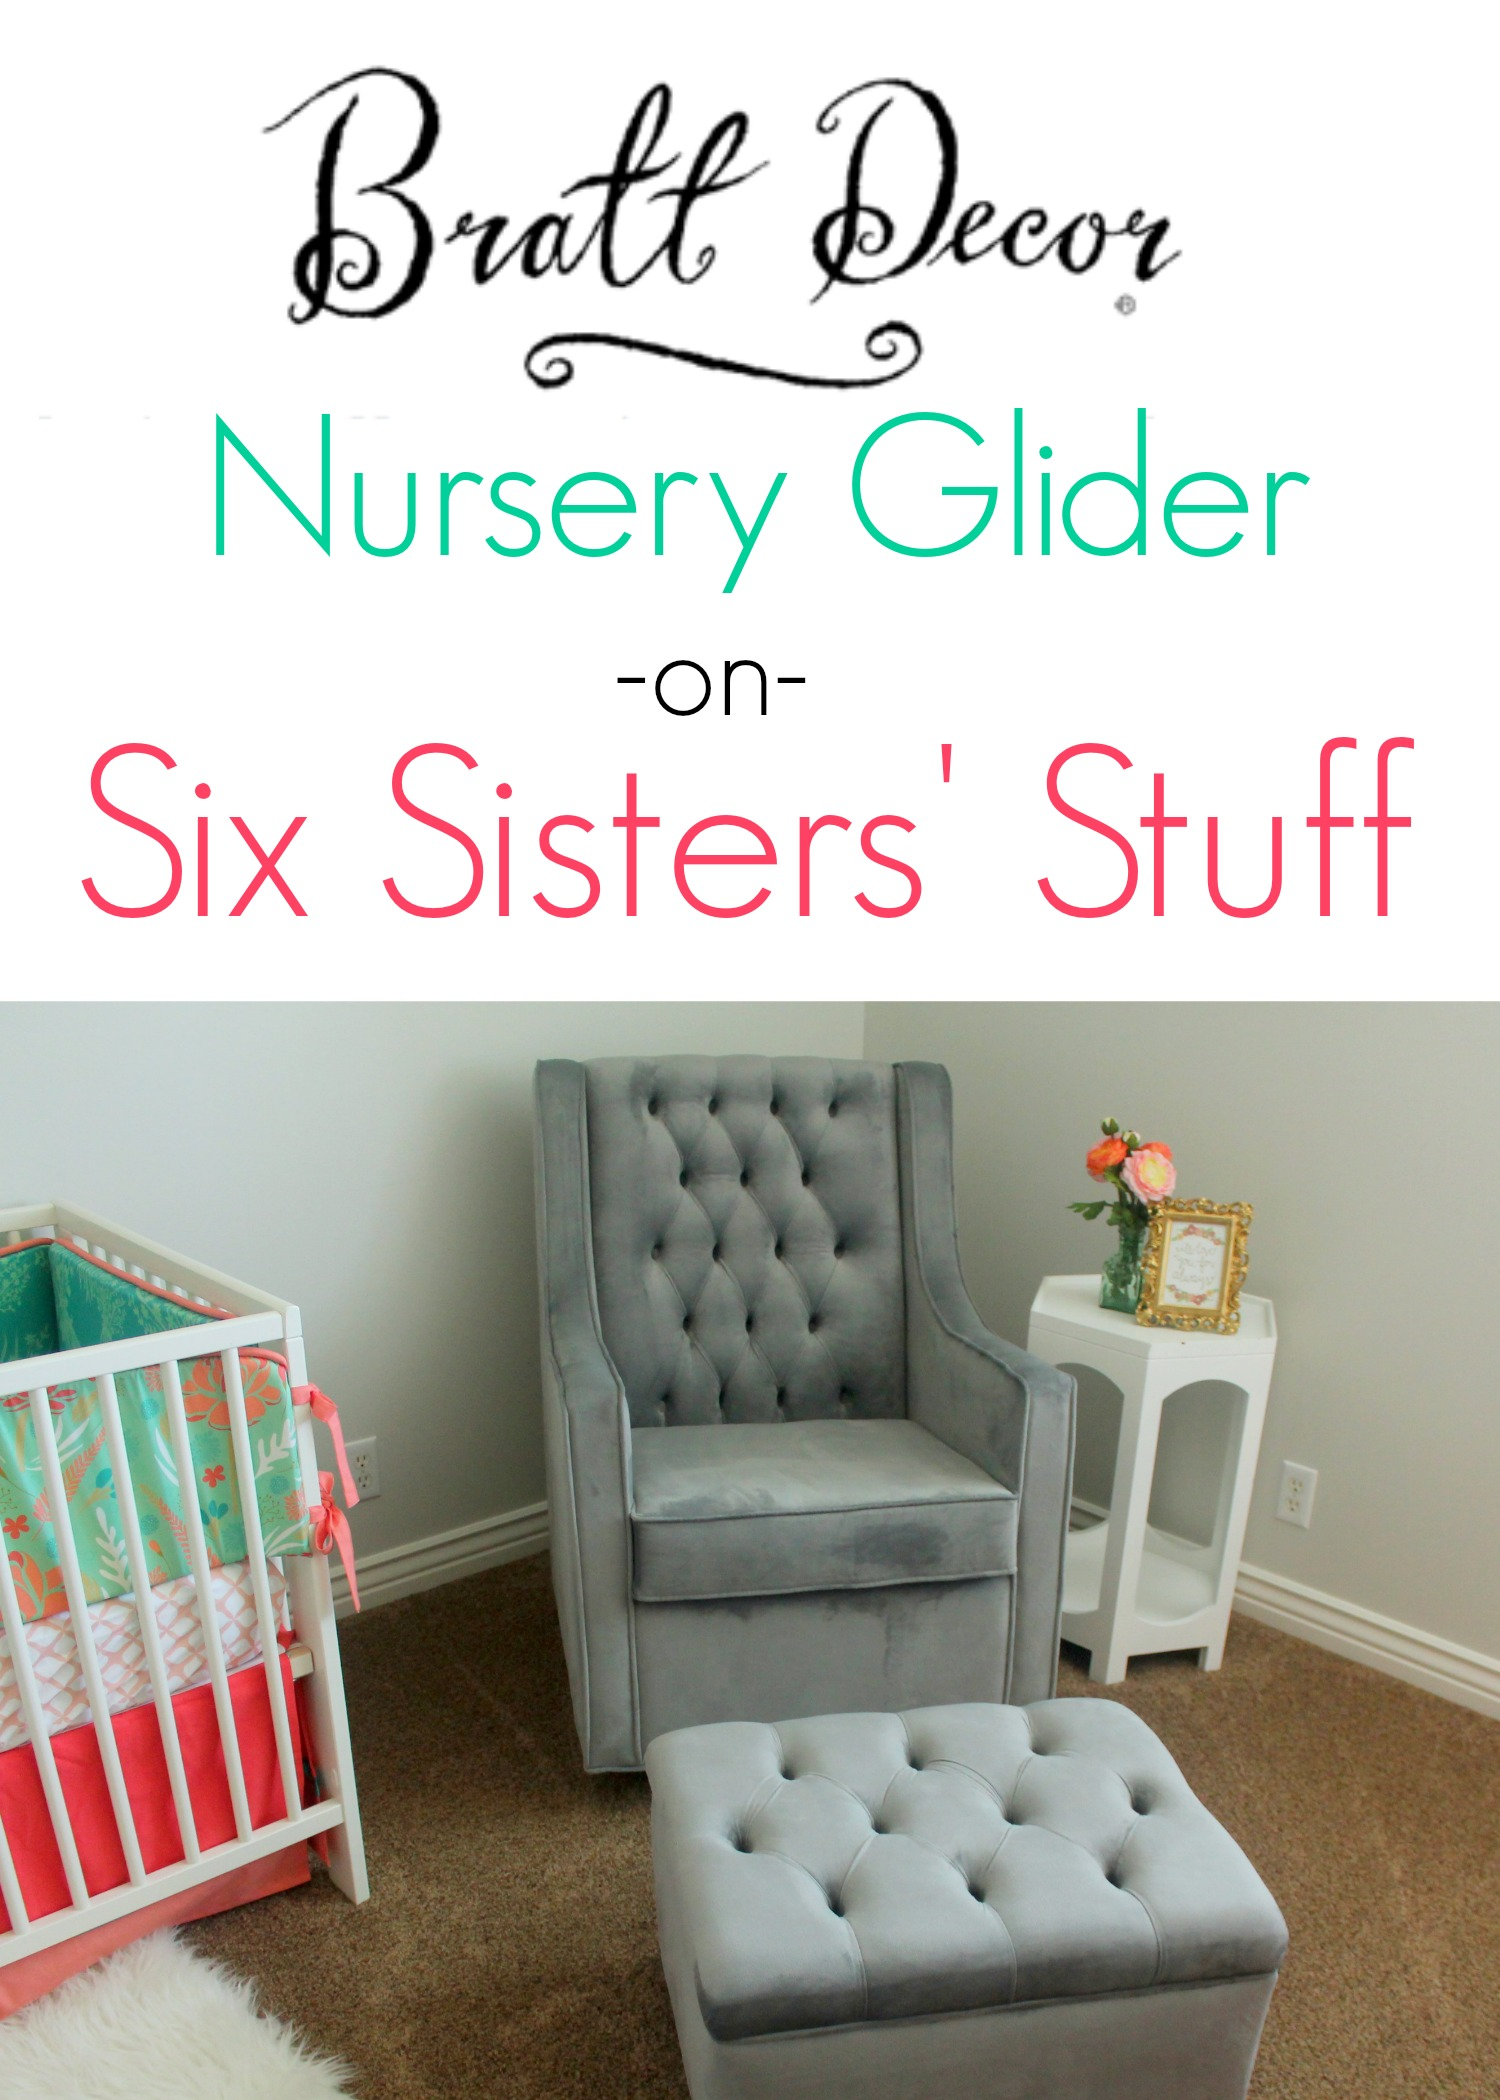 Bratt-Decor-Nursery-Glider